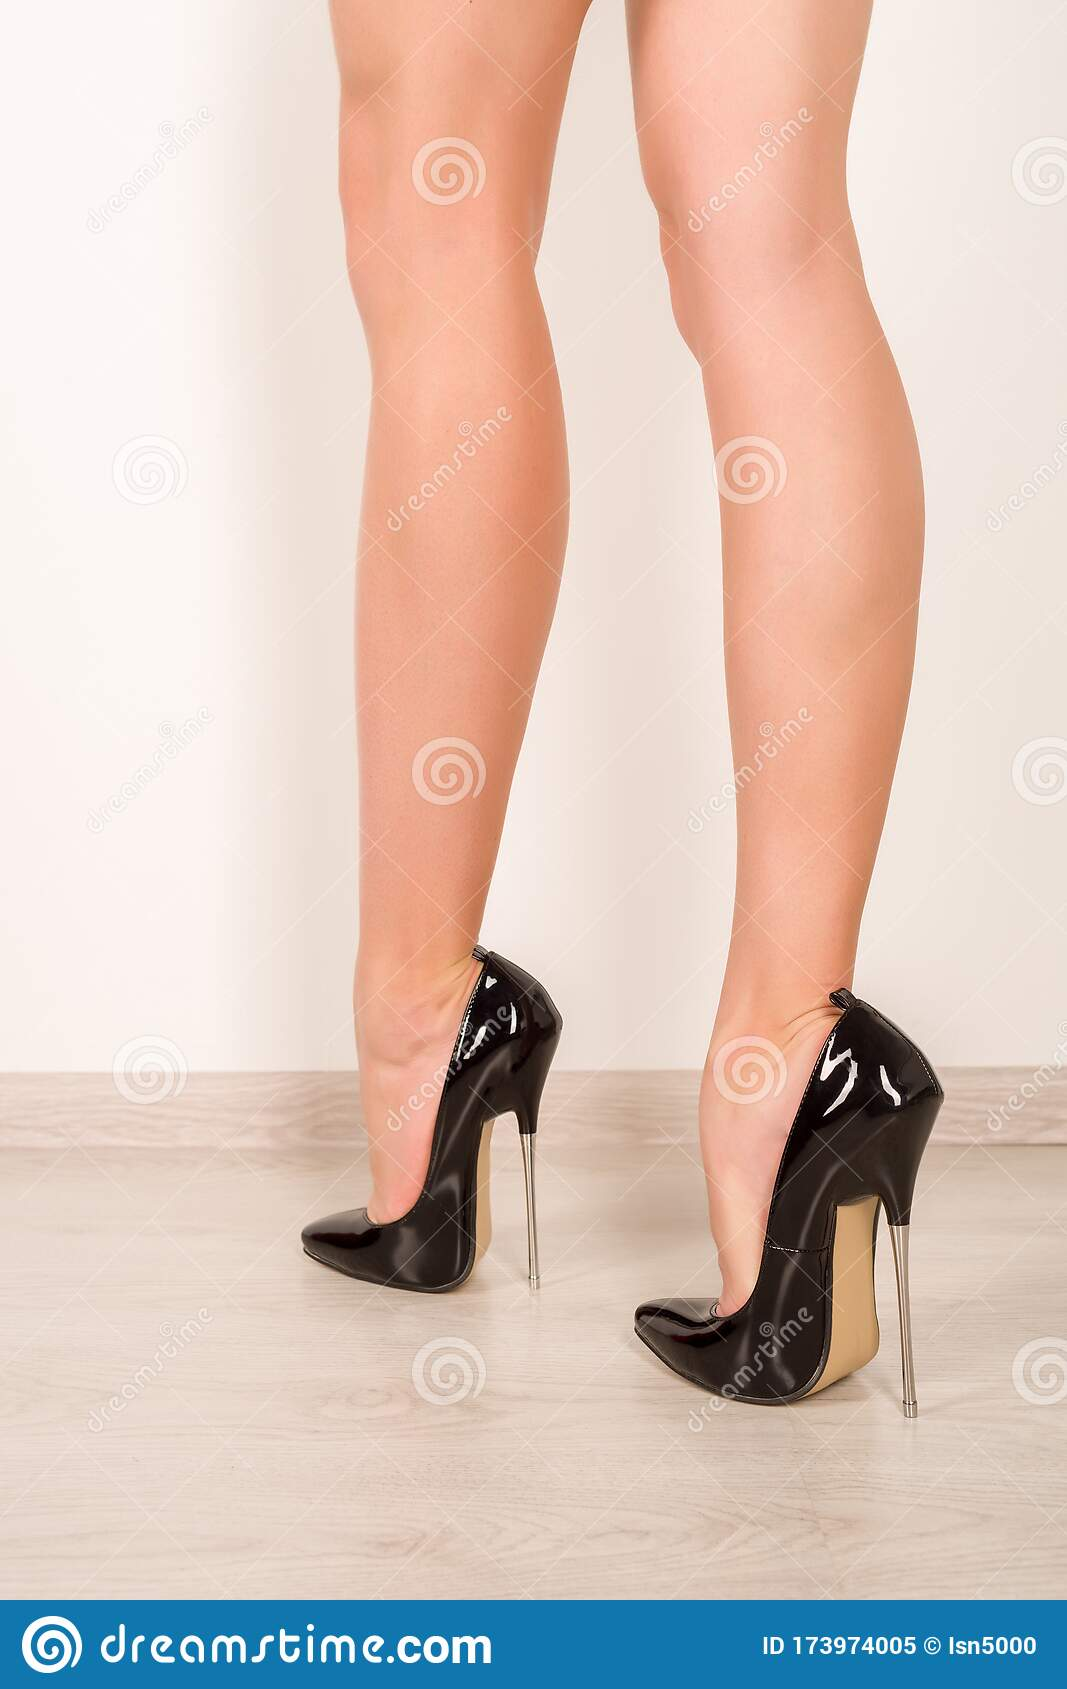 Woman Legs In Black Fetish Shiny Patent Leather Stiletto High